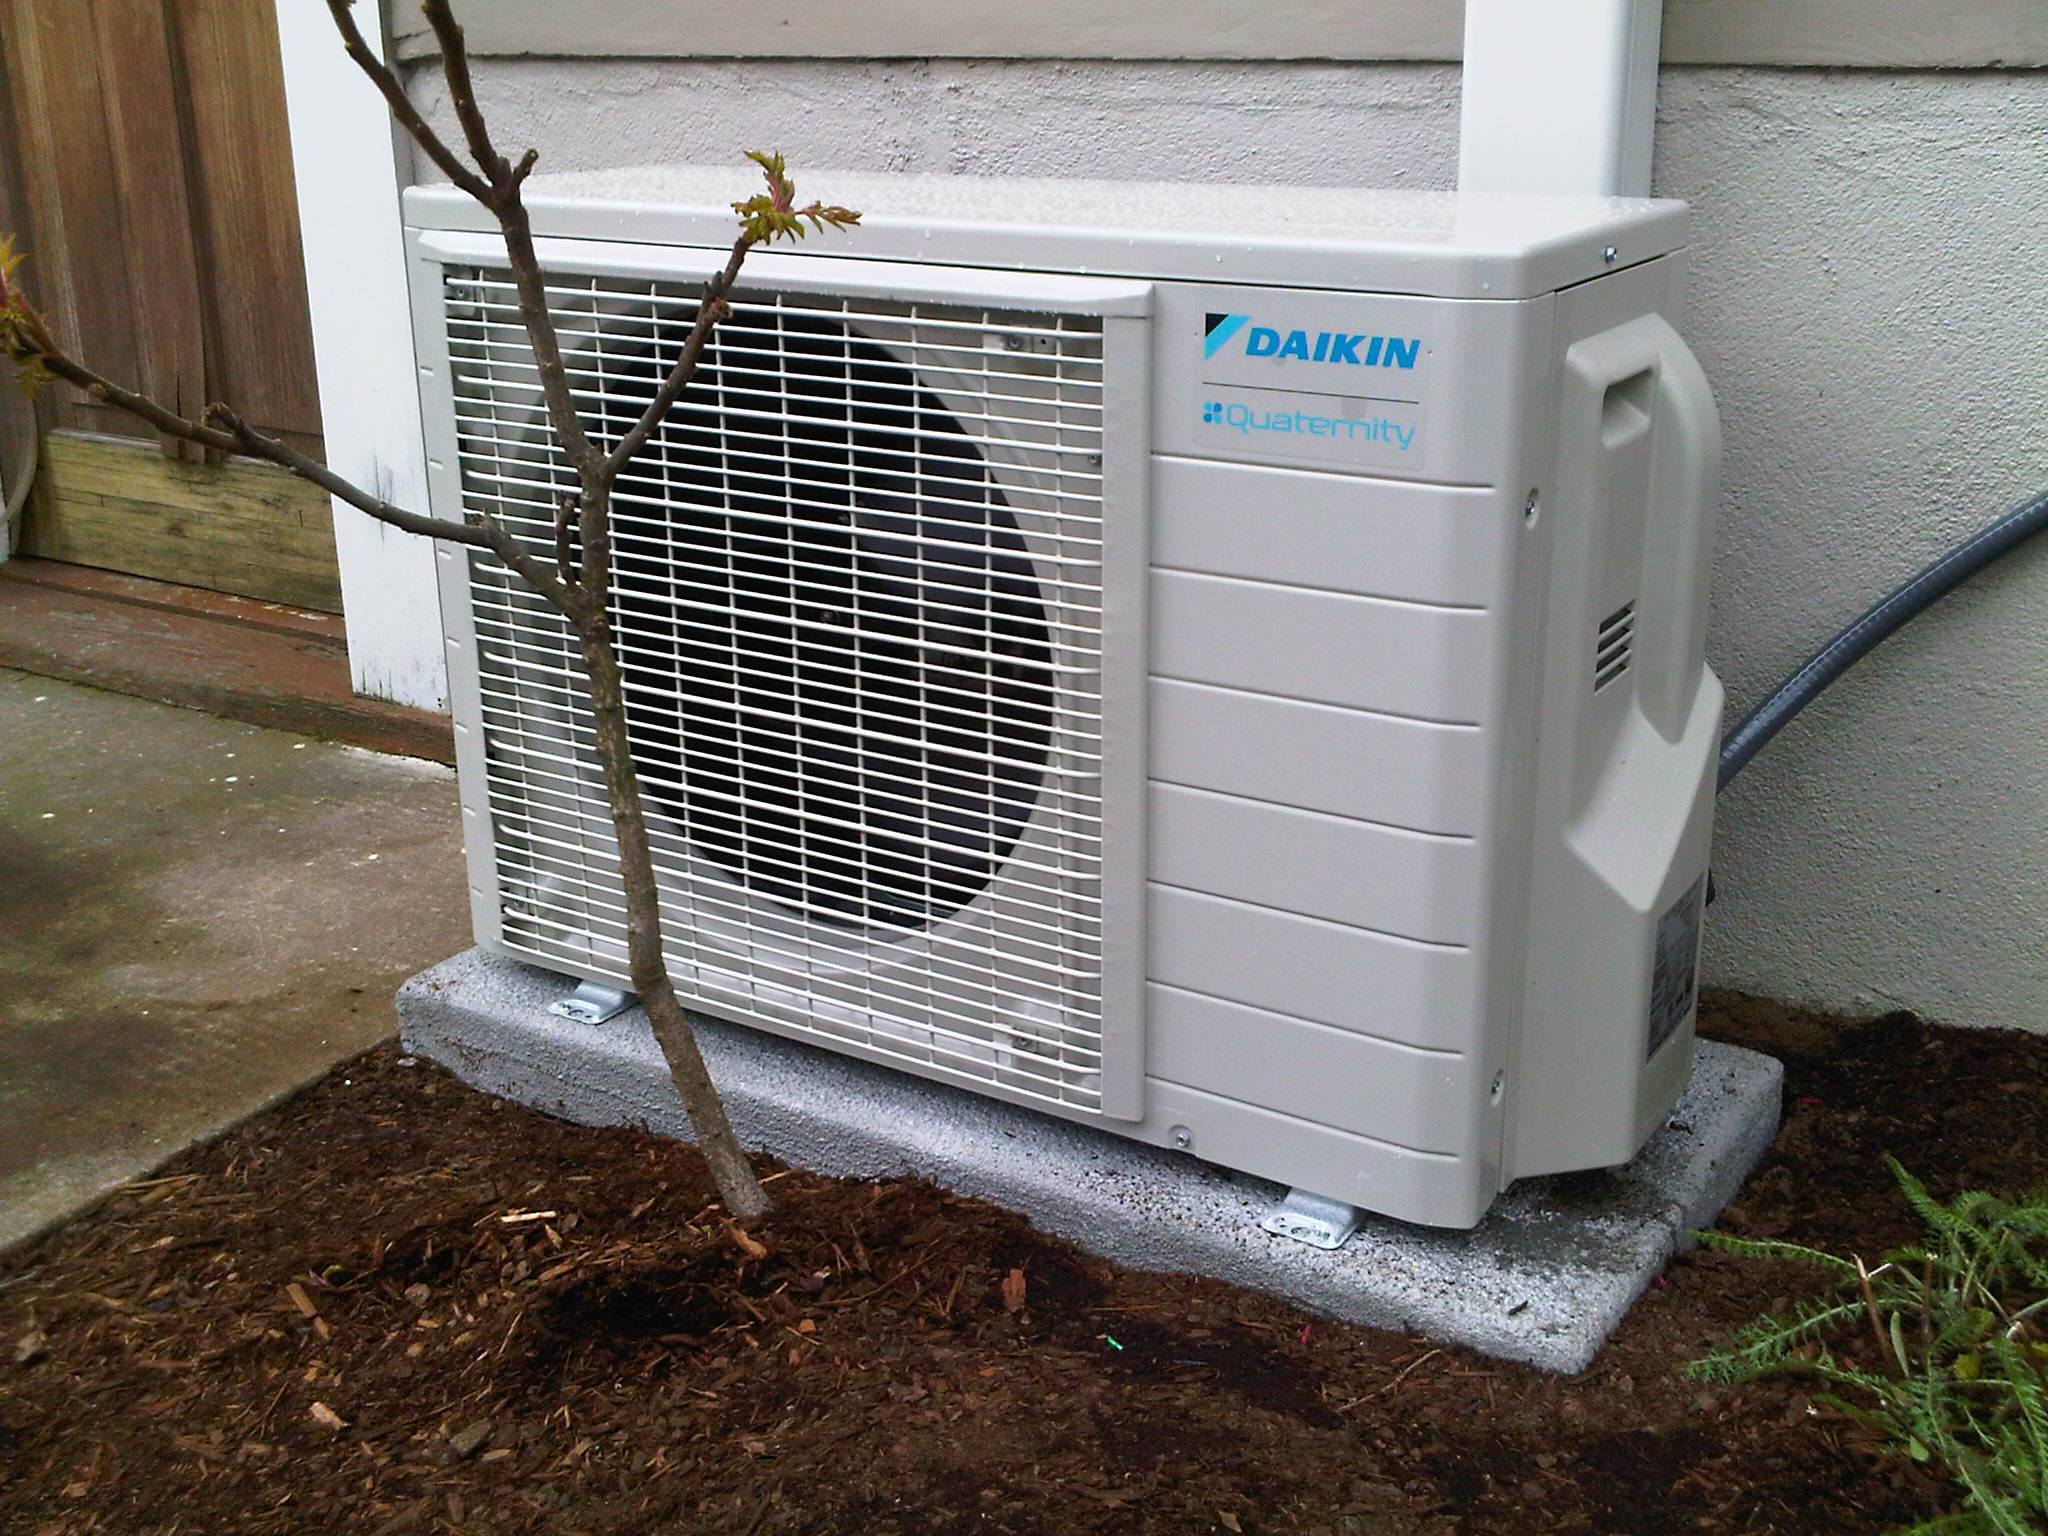 a stanton dept samsung com split mitsubishi tight this heat house ductless insulated greenbuildingadvisor cold heating well pump climate mini blogs musings